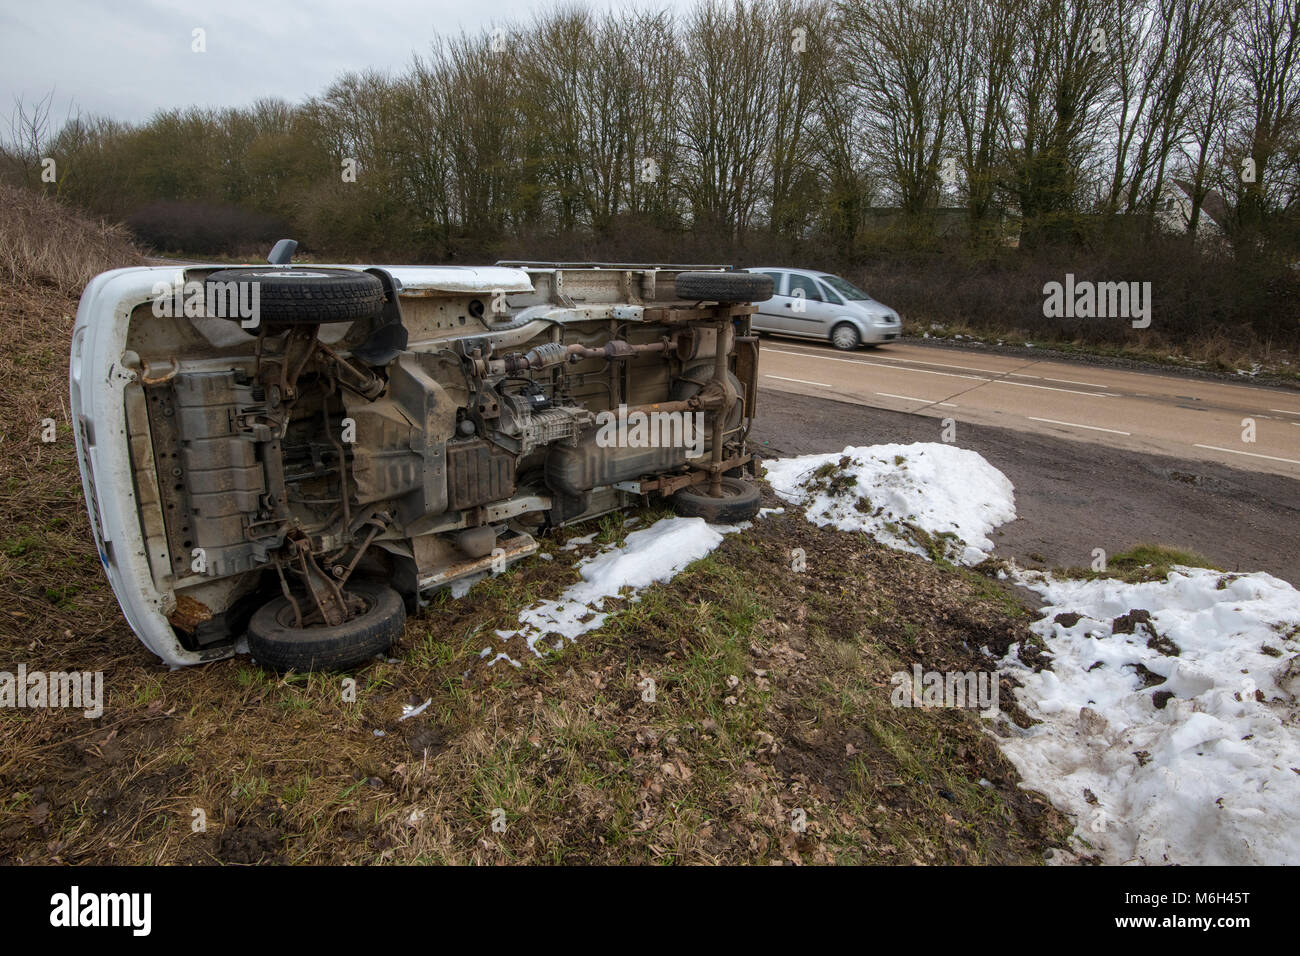 Ad van turned over on the A47 at wendling March 2018 Credit: Jason Marsh/Alamy Live News - Stock Image